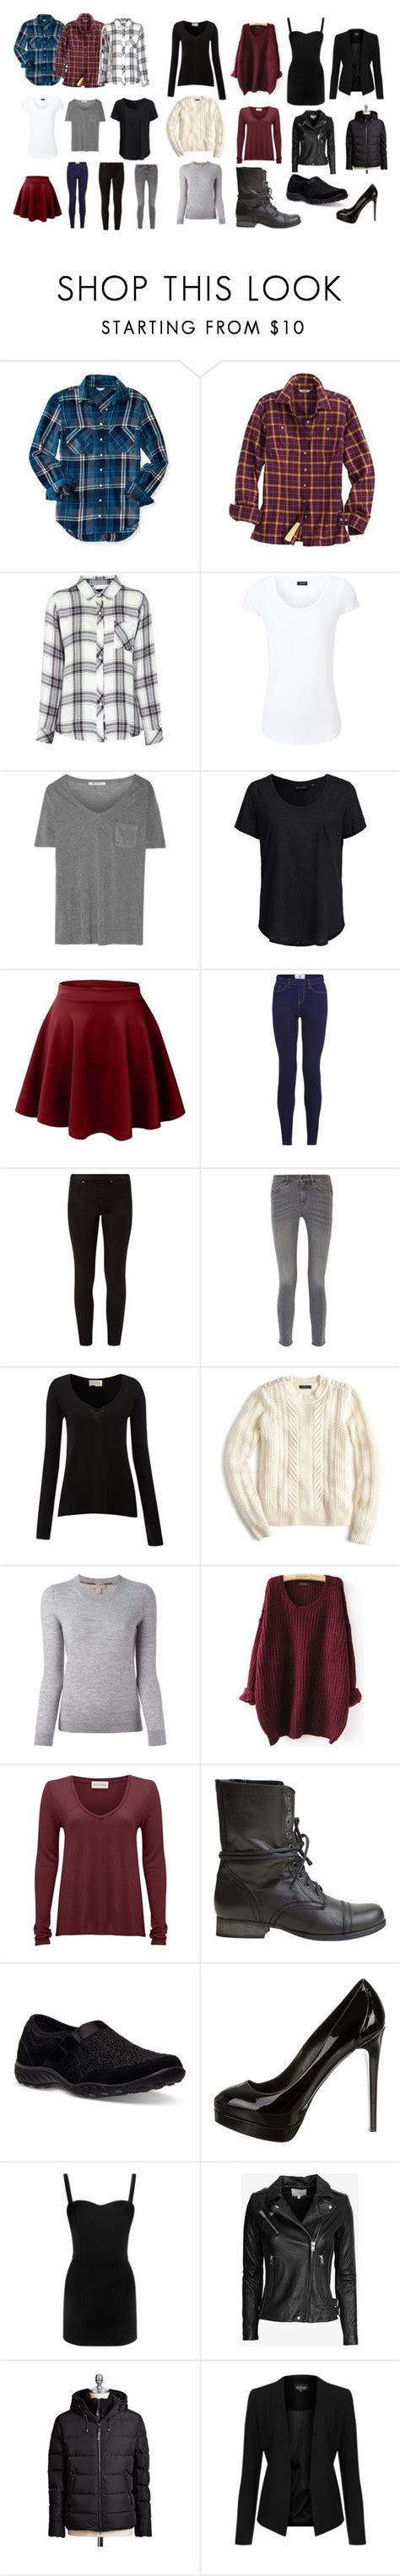 College Capsule Wardrobe by 25 Best Ideas About College Wardrobe Essentials On